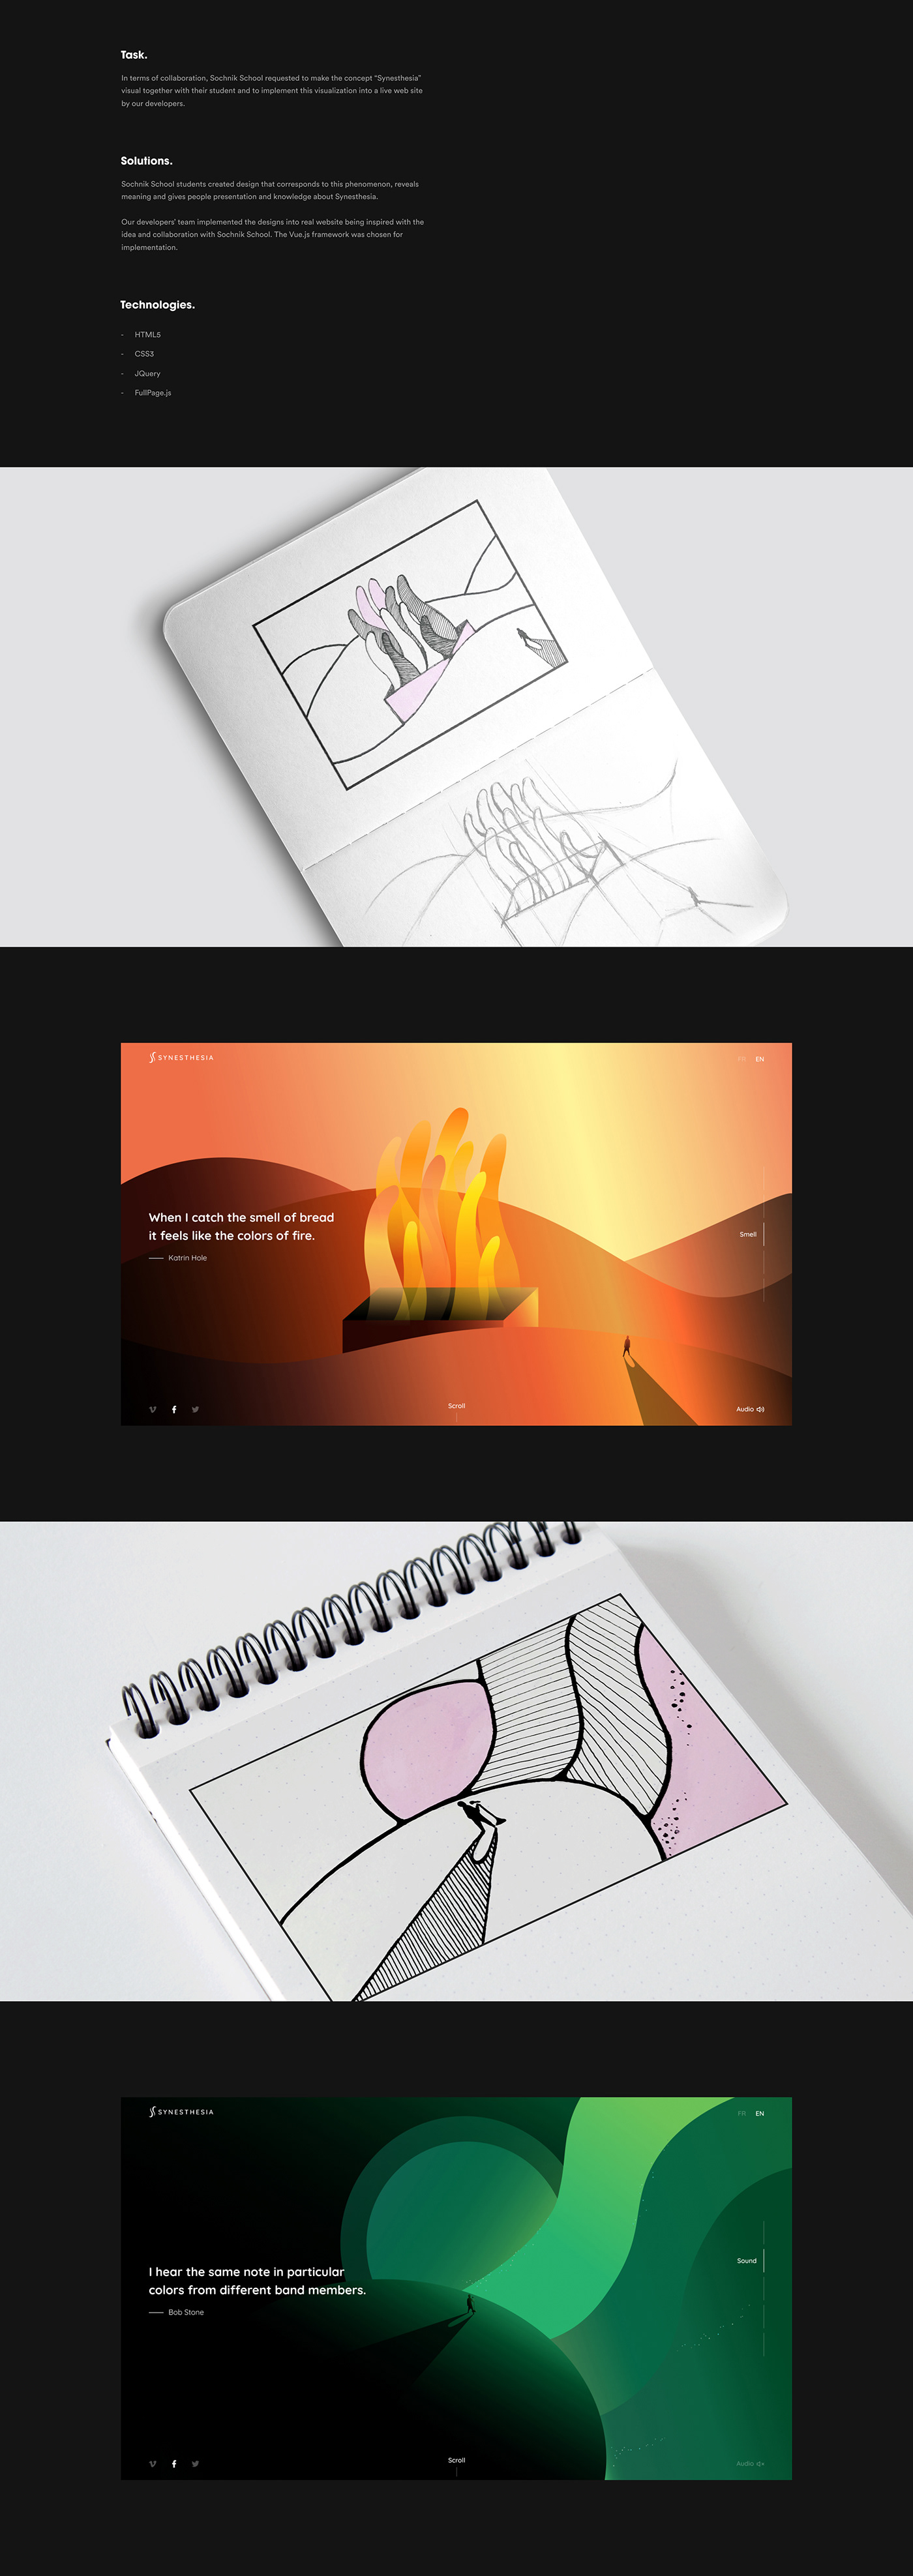 user interface design User Experience Design Web Design  ILLUSTRATION  animation  UI wireframing Prototyping design research design thinking